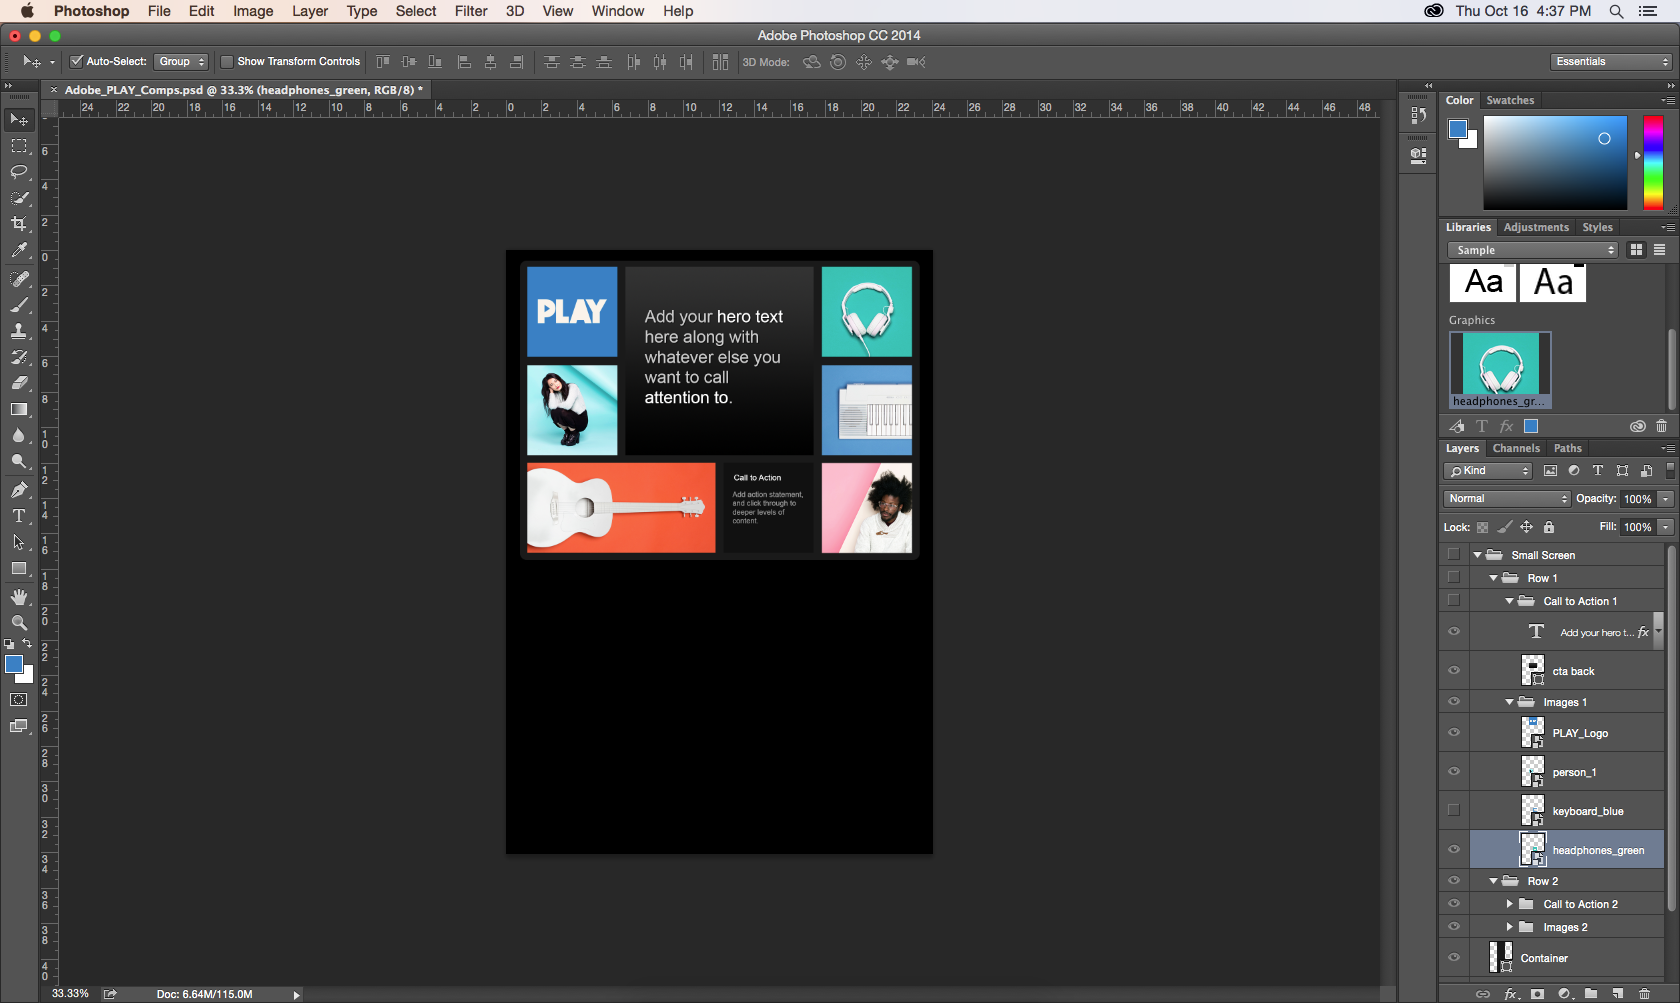 How To Install Photoshop Cc 2014 Crack